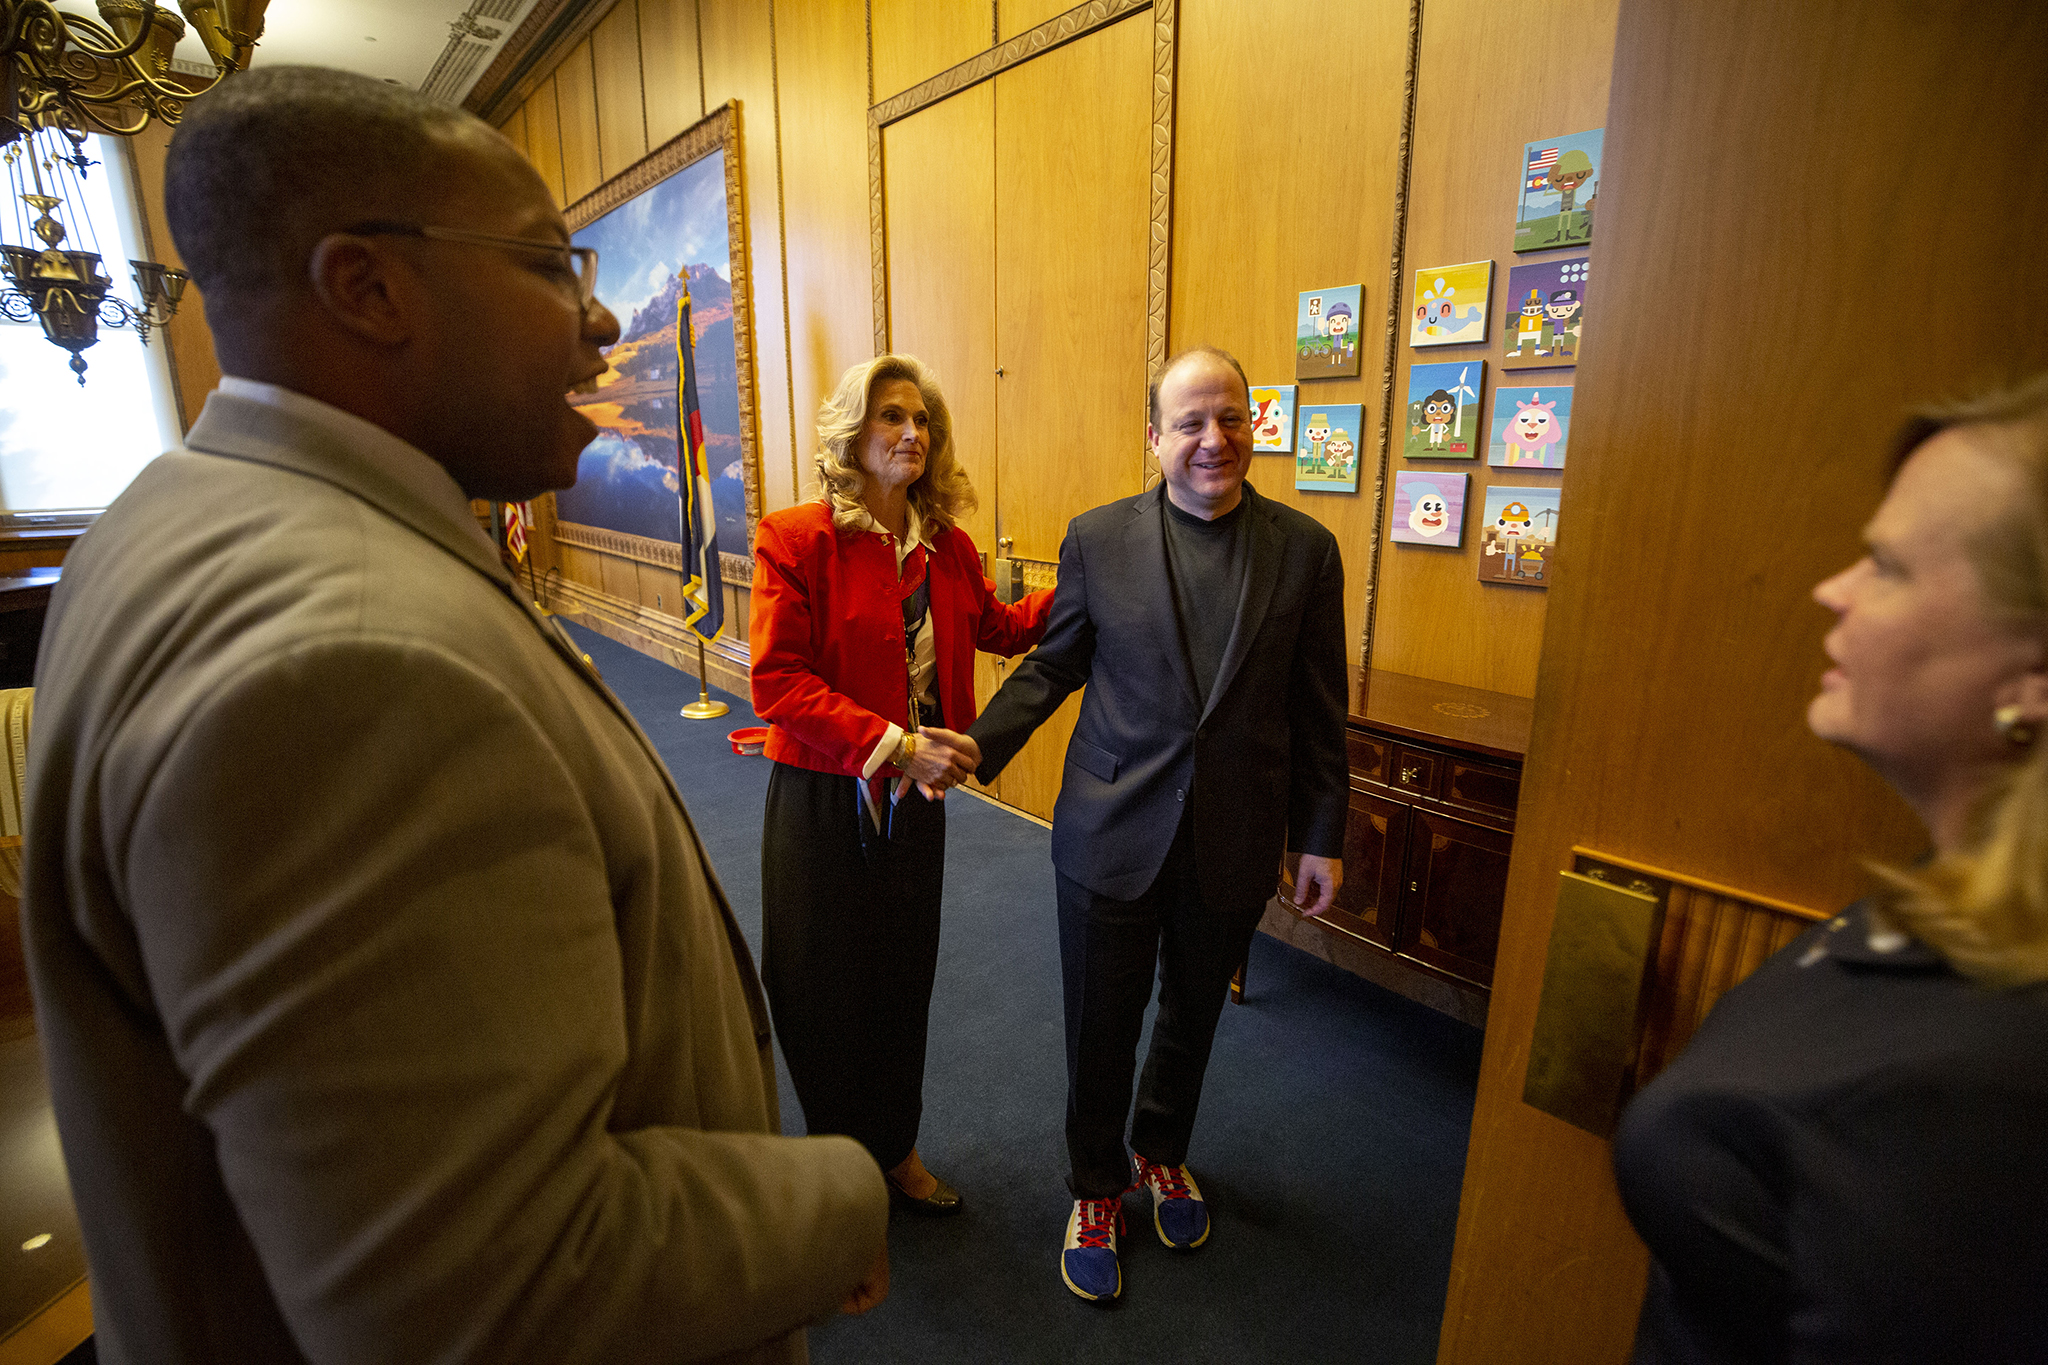 State Reps. Jovan Melton (left to right), Perry Buck and Meg Froelich inform Gov. Jared Polis that the House is ready for business on The first day of the 2020 legislative session. The Colorado State Capitol. Jan. 8, 2020.